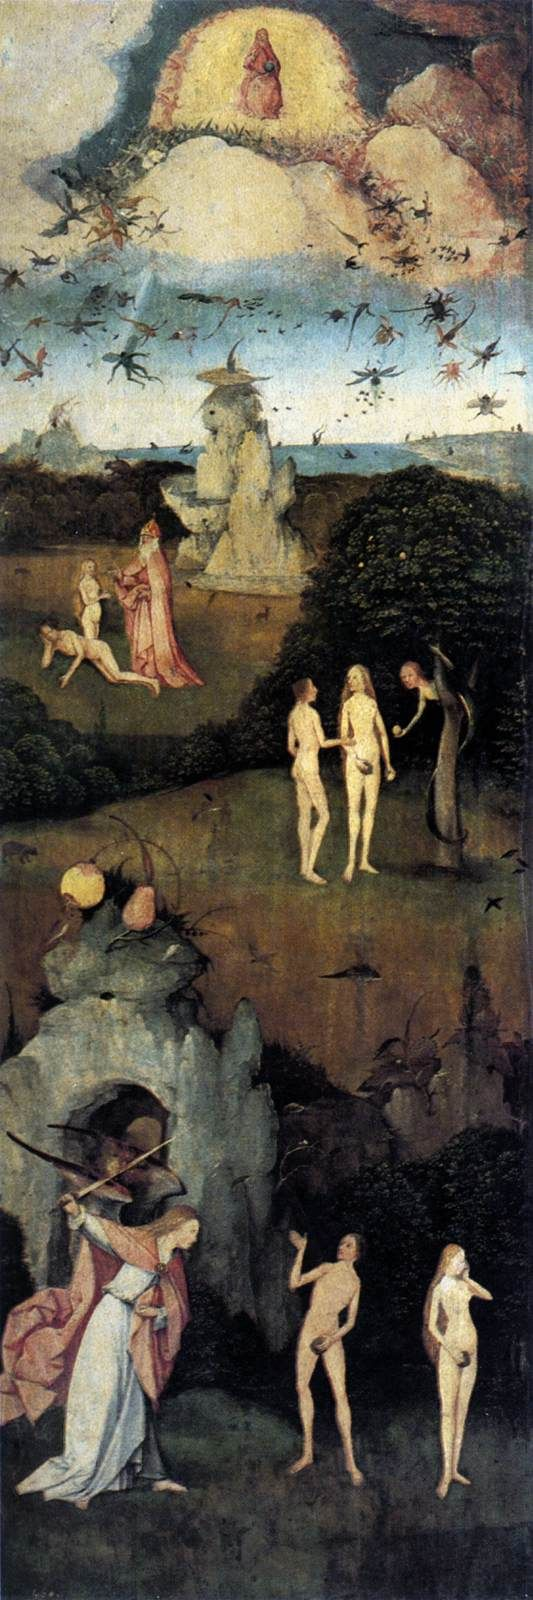 Paradise - Triptych of Haywain (left wing) by Hieronymus Bosch, 1500